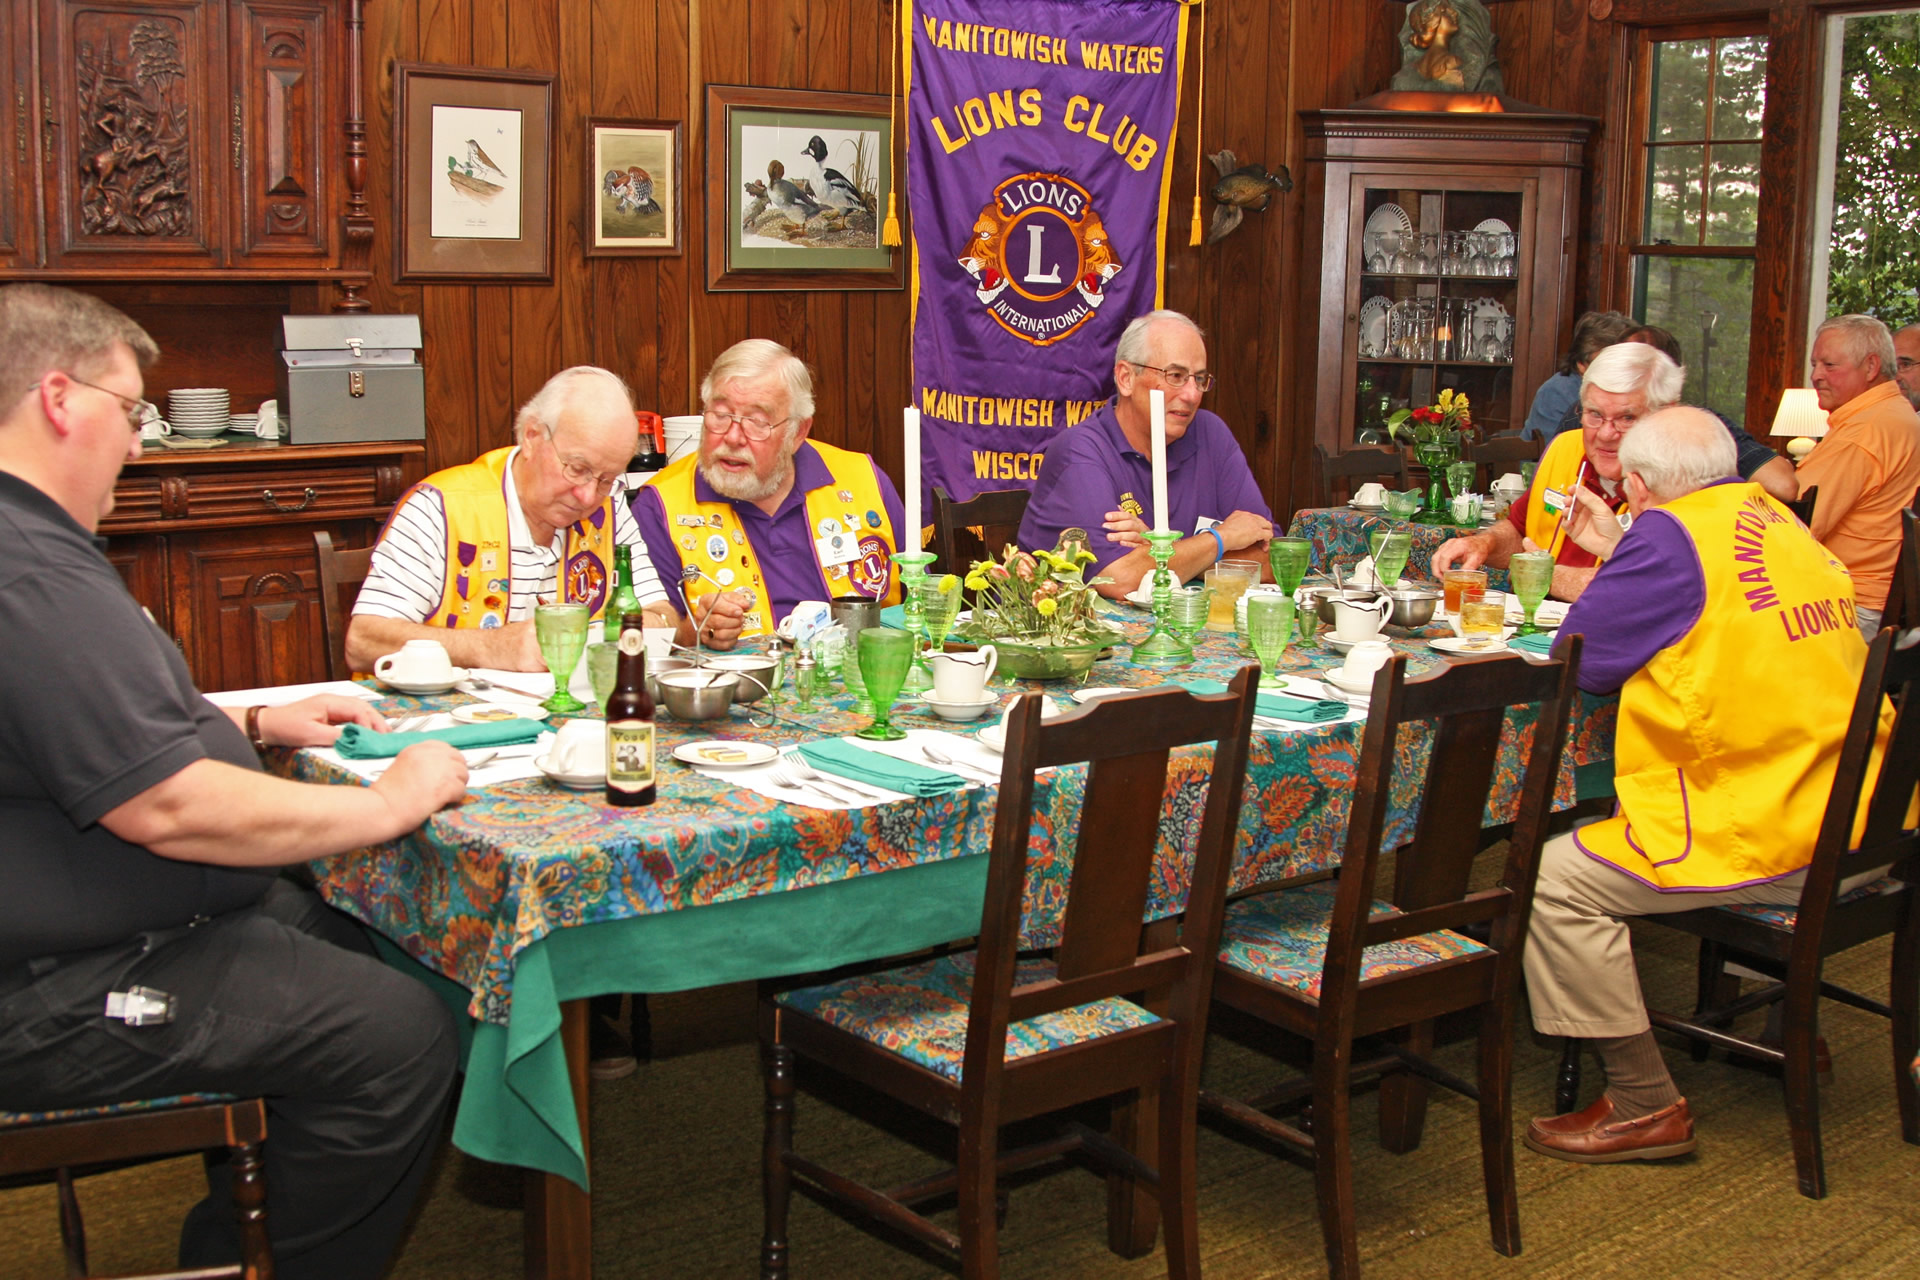 manitowish-waters-lions-club-001